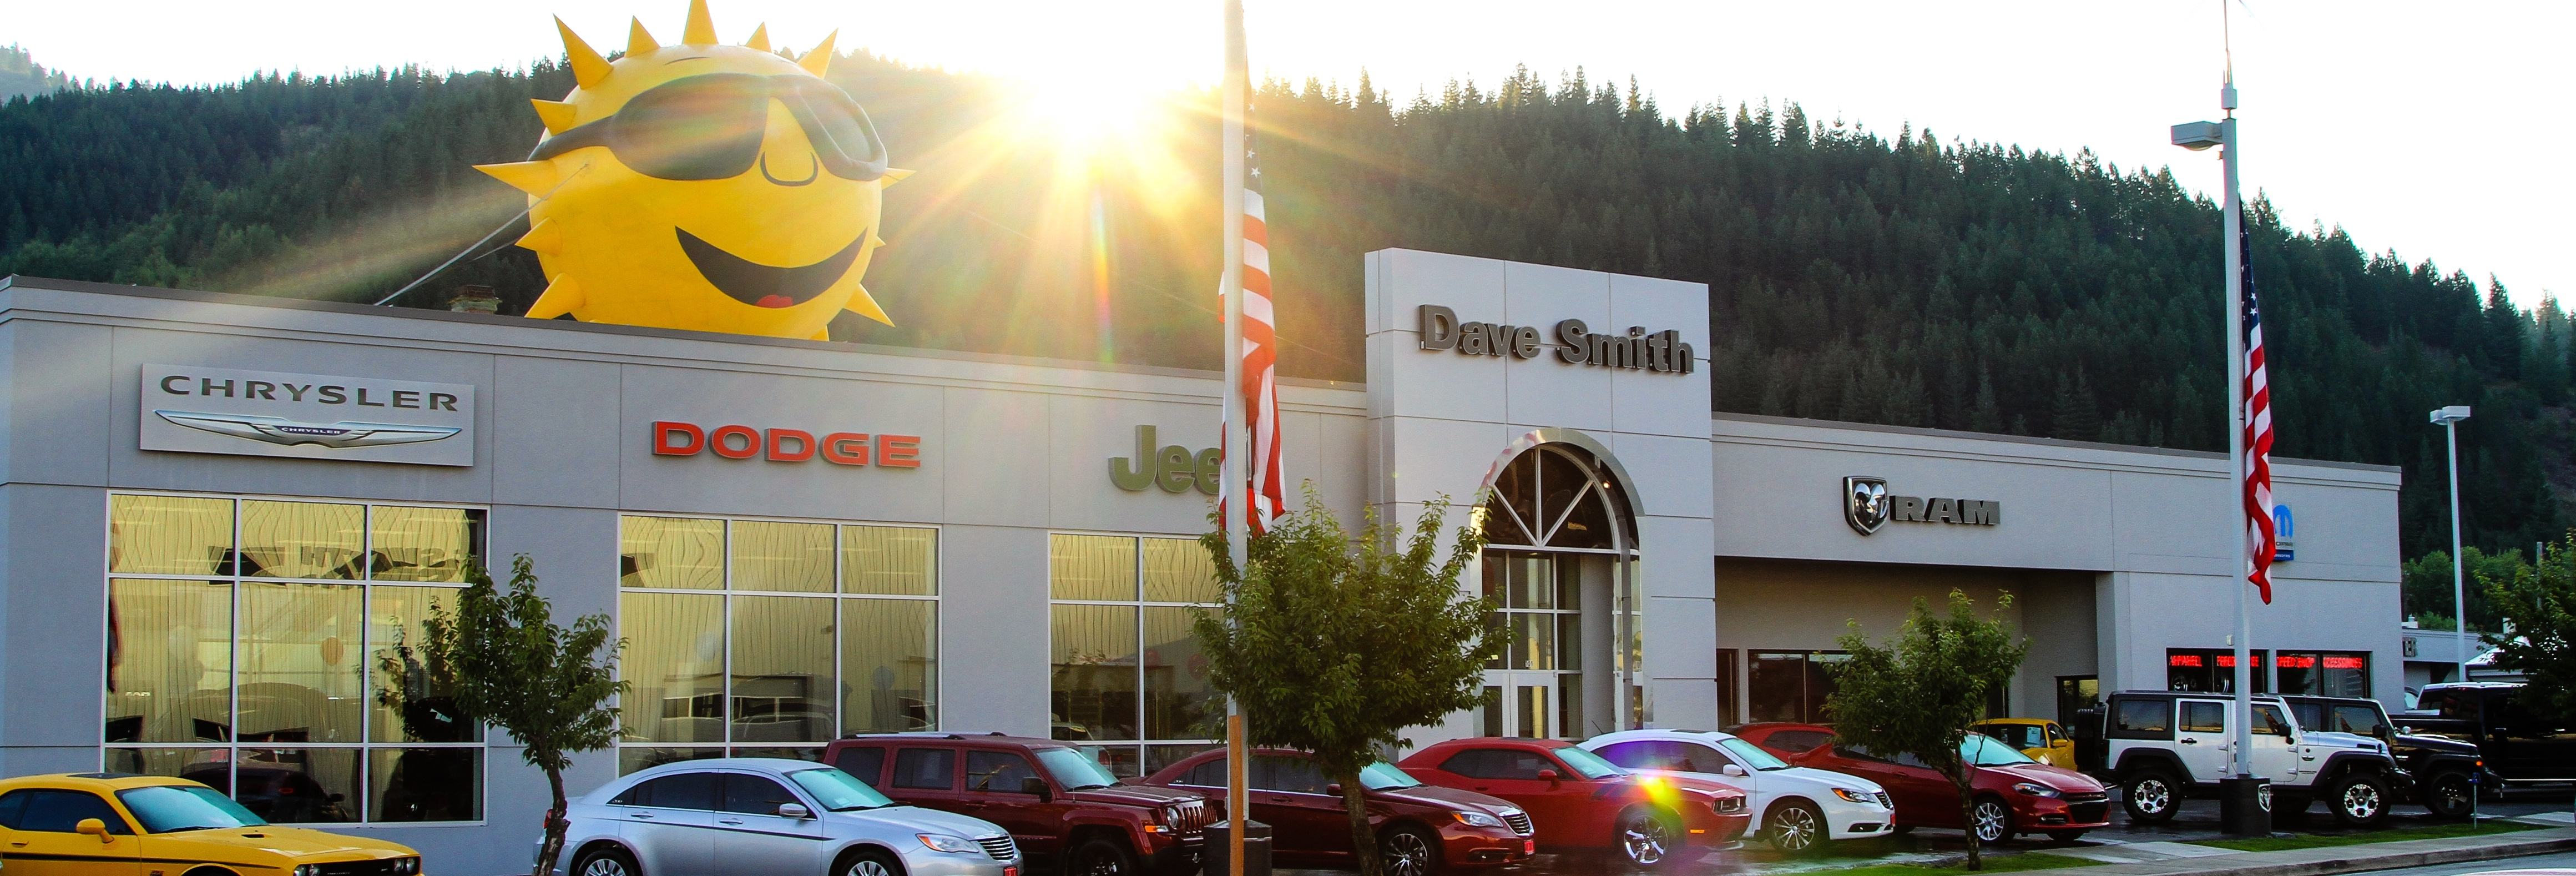 Dave Smith Motors New Car Dealers In Kellogg Idaho